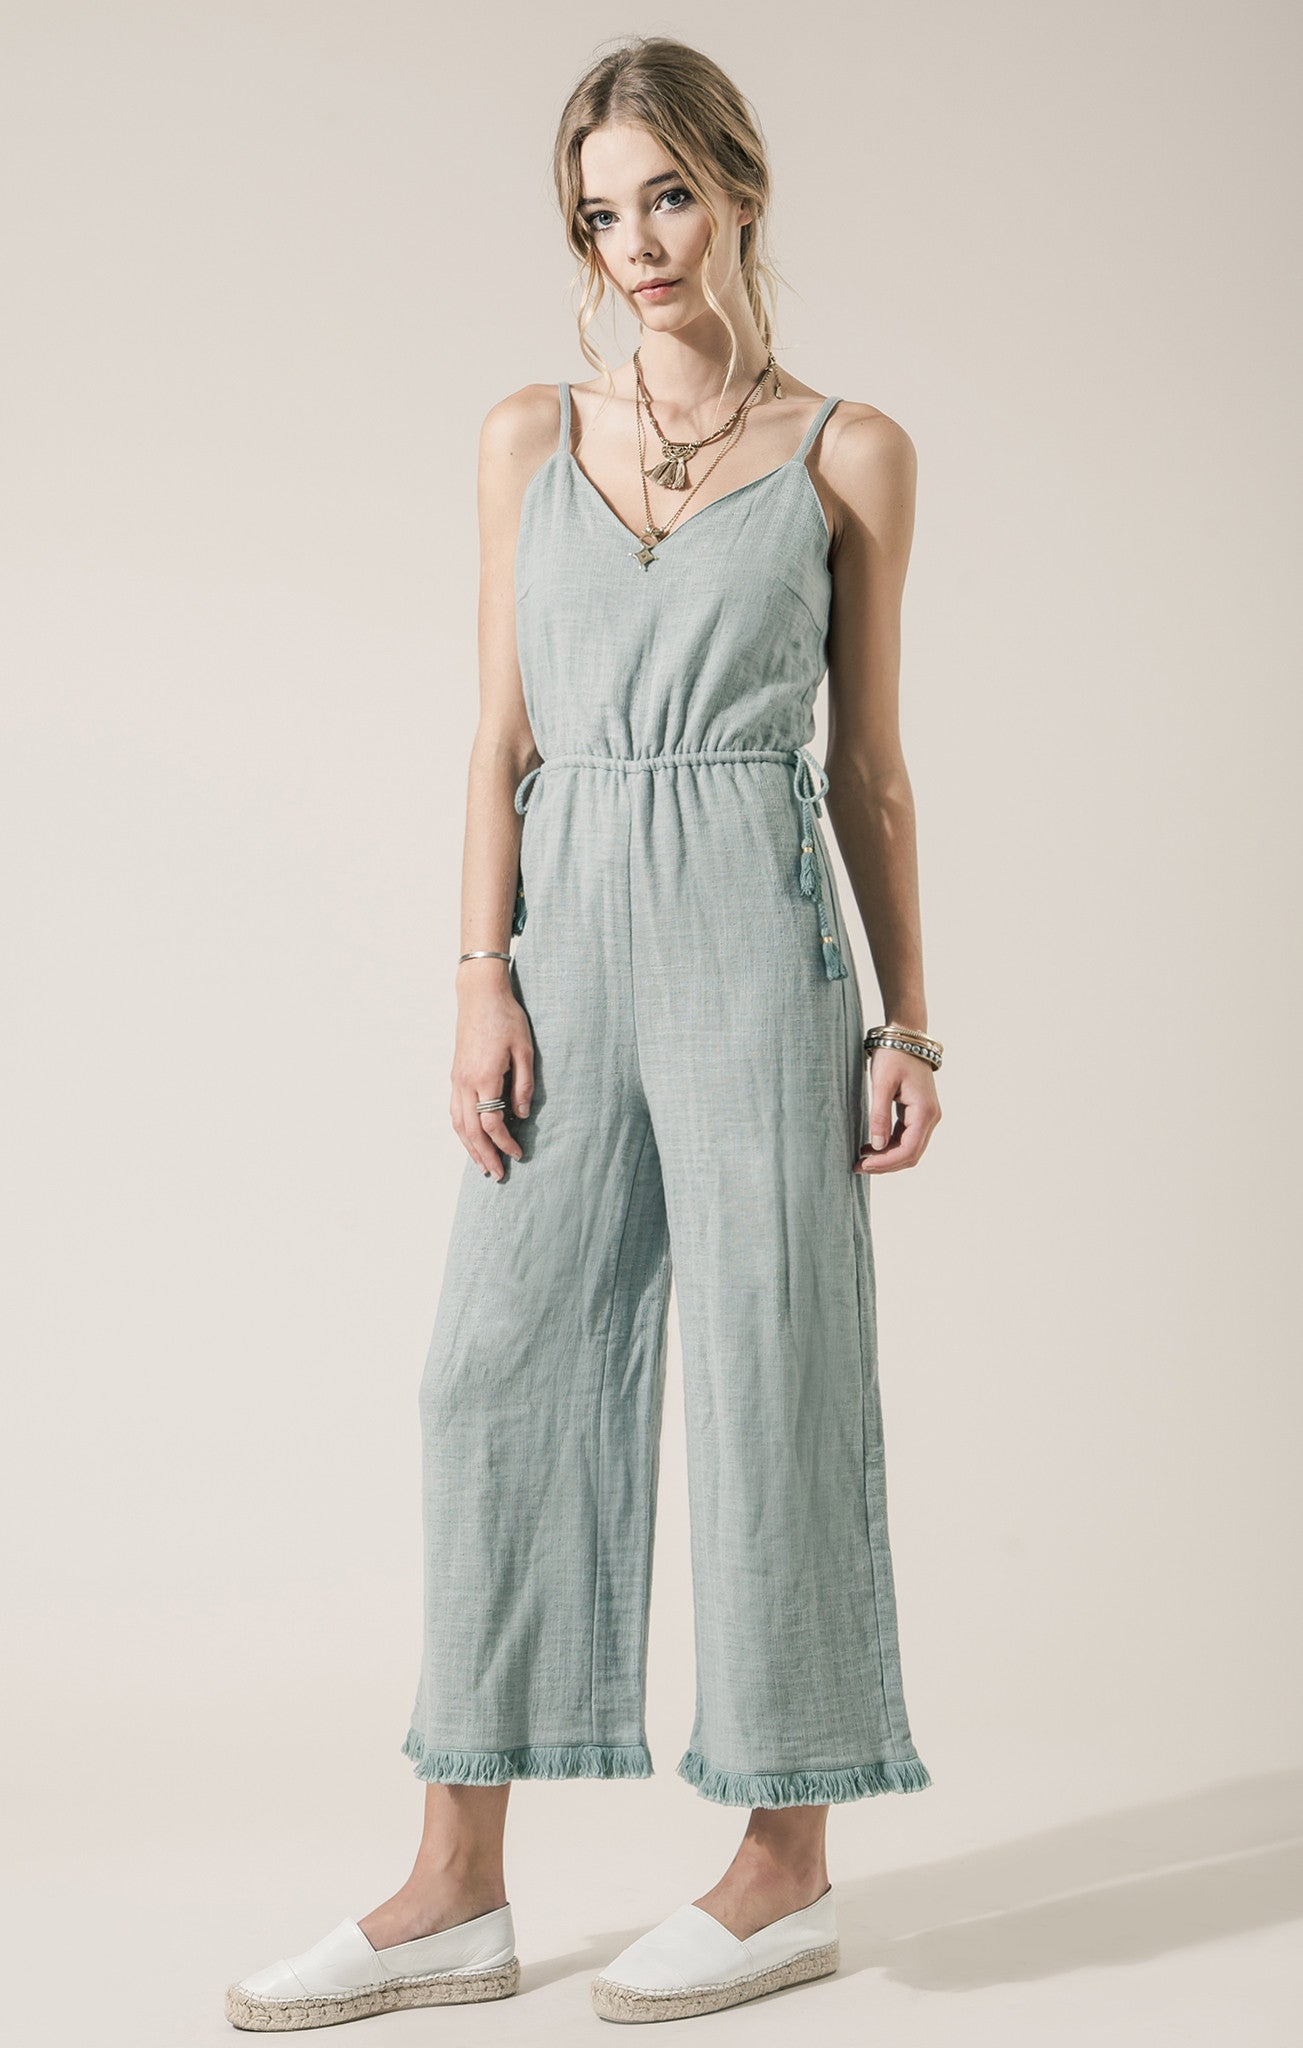 ROMPER WITH TASSELS